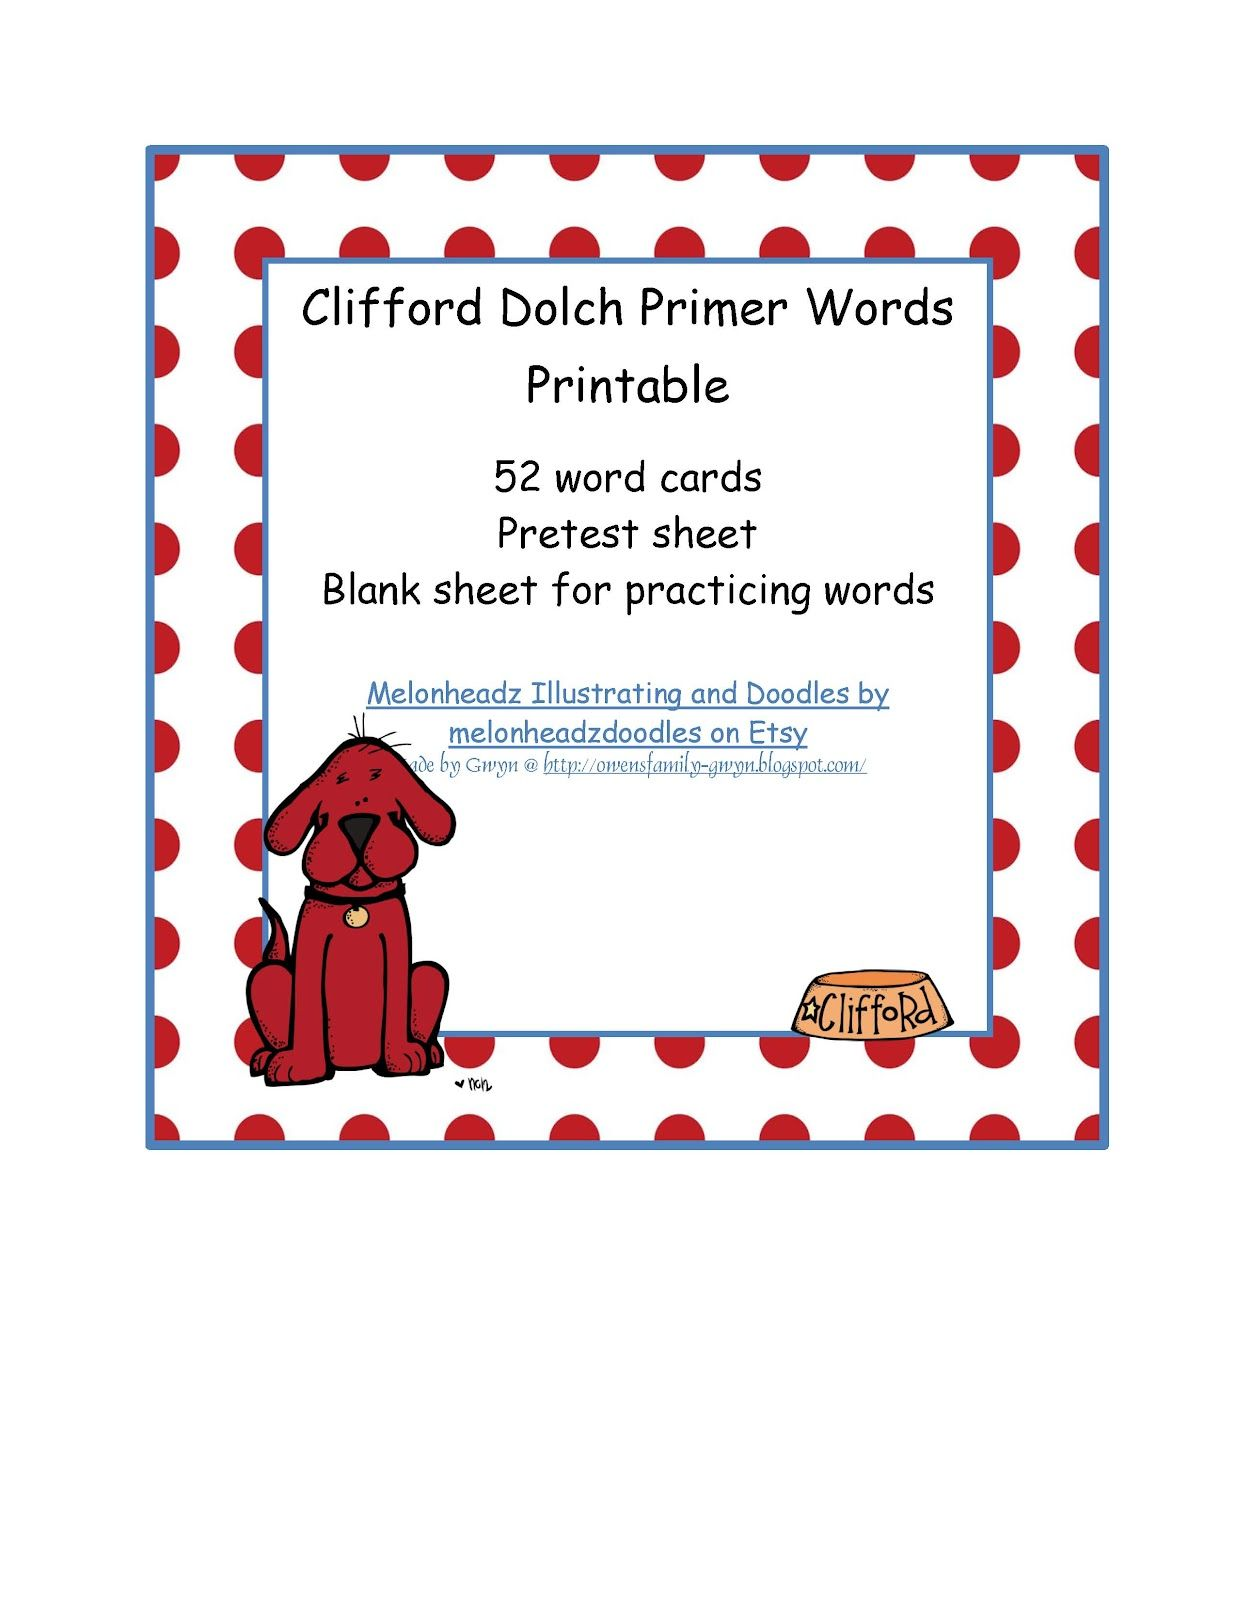 Clifford Dolch Primer Words Printable 0 99